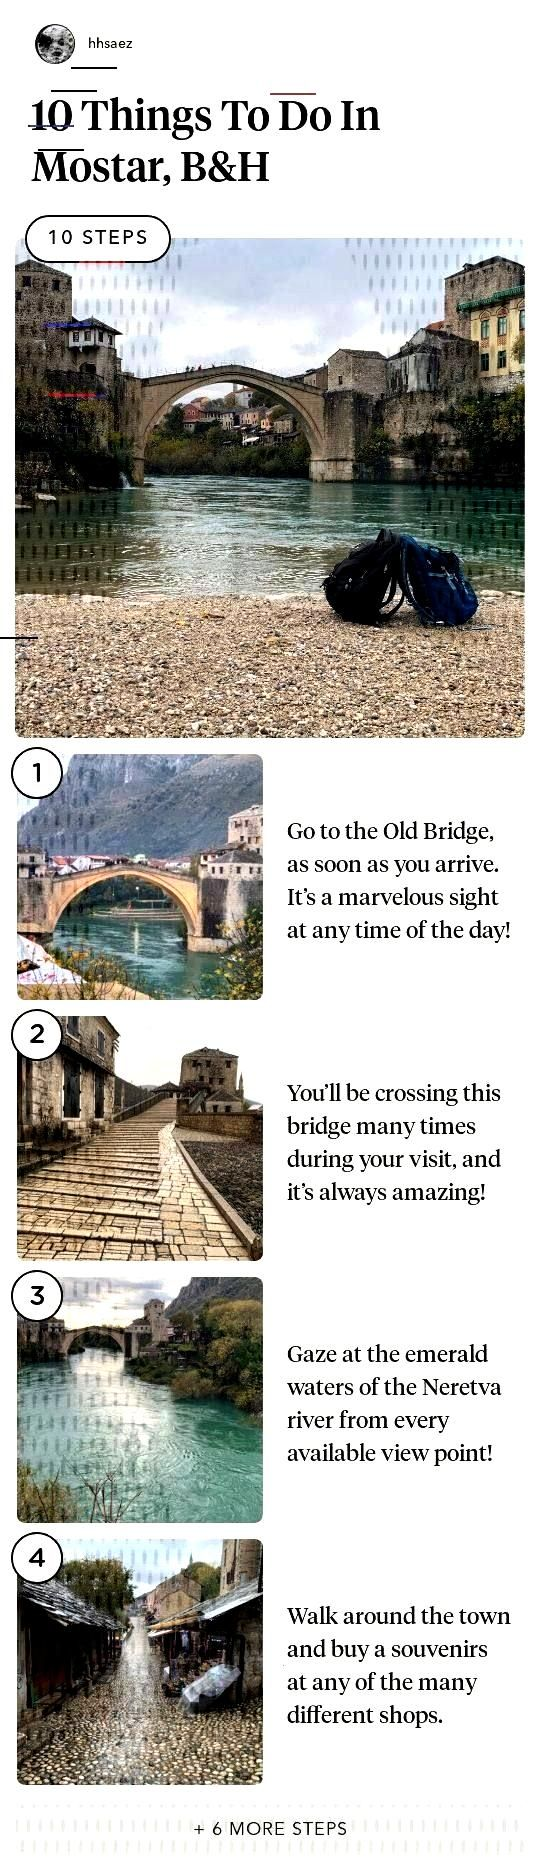 10 Things To Do In Mostar, B&H 10 Things To Do In Mostar, B&H in 10 steps